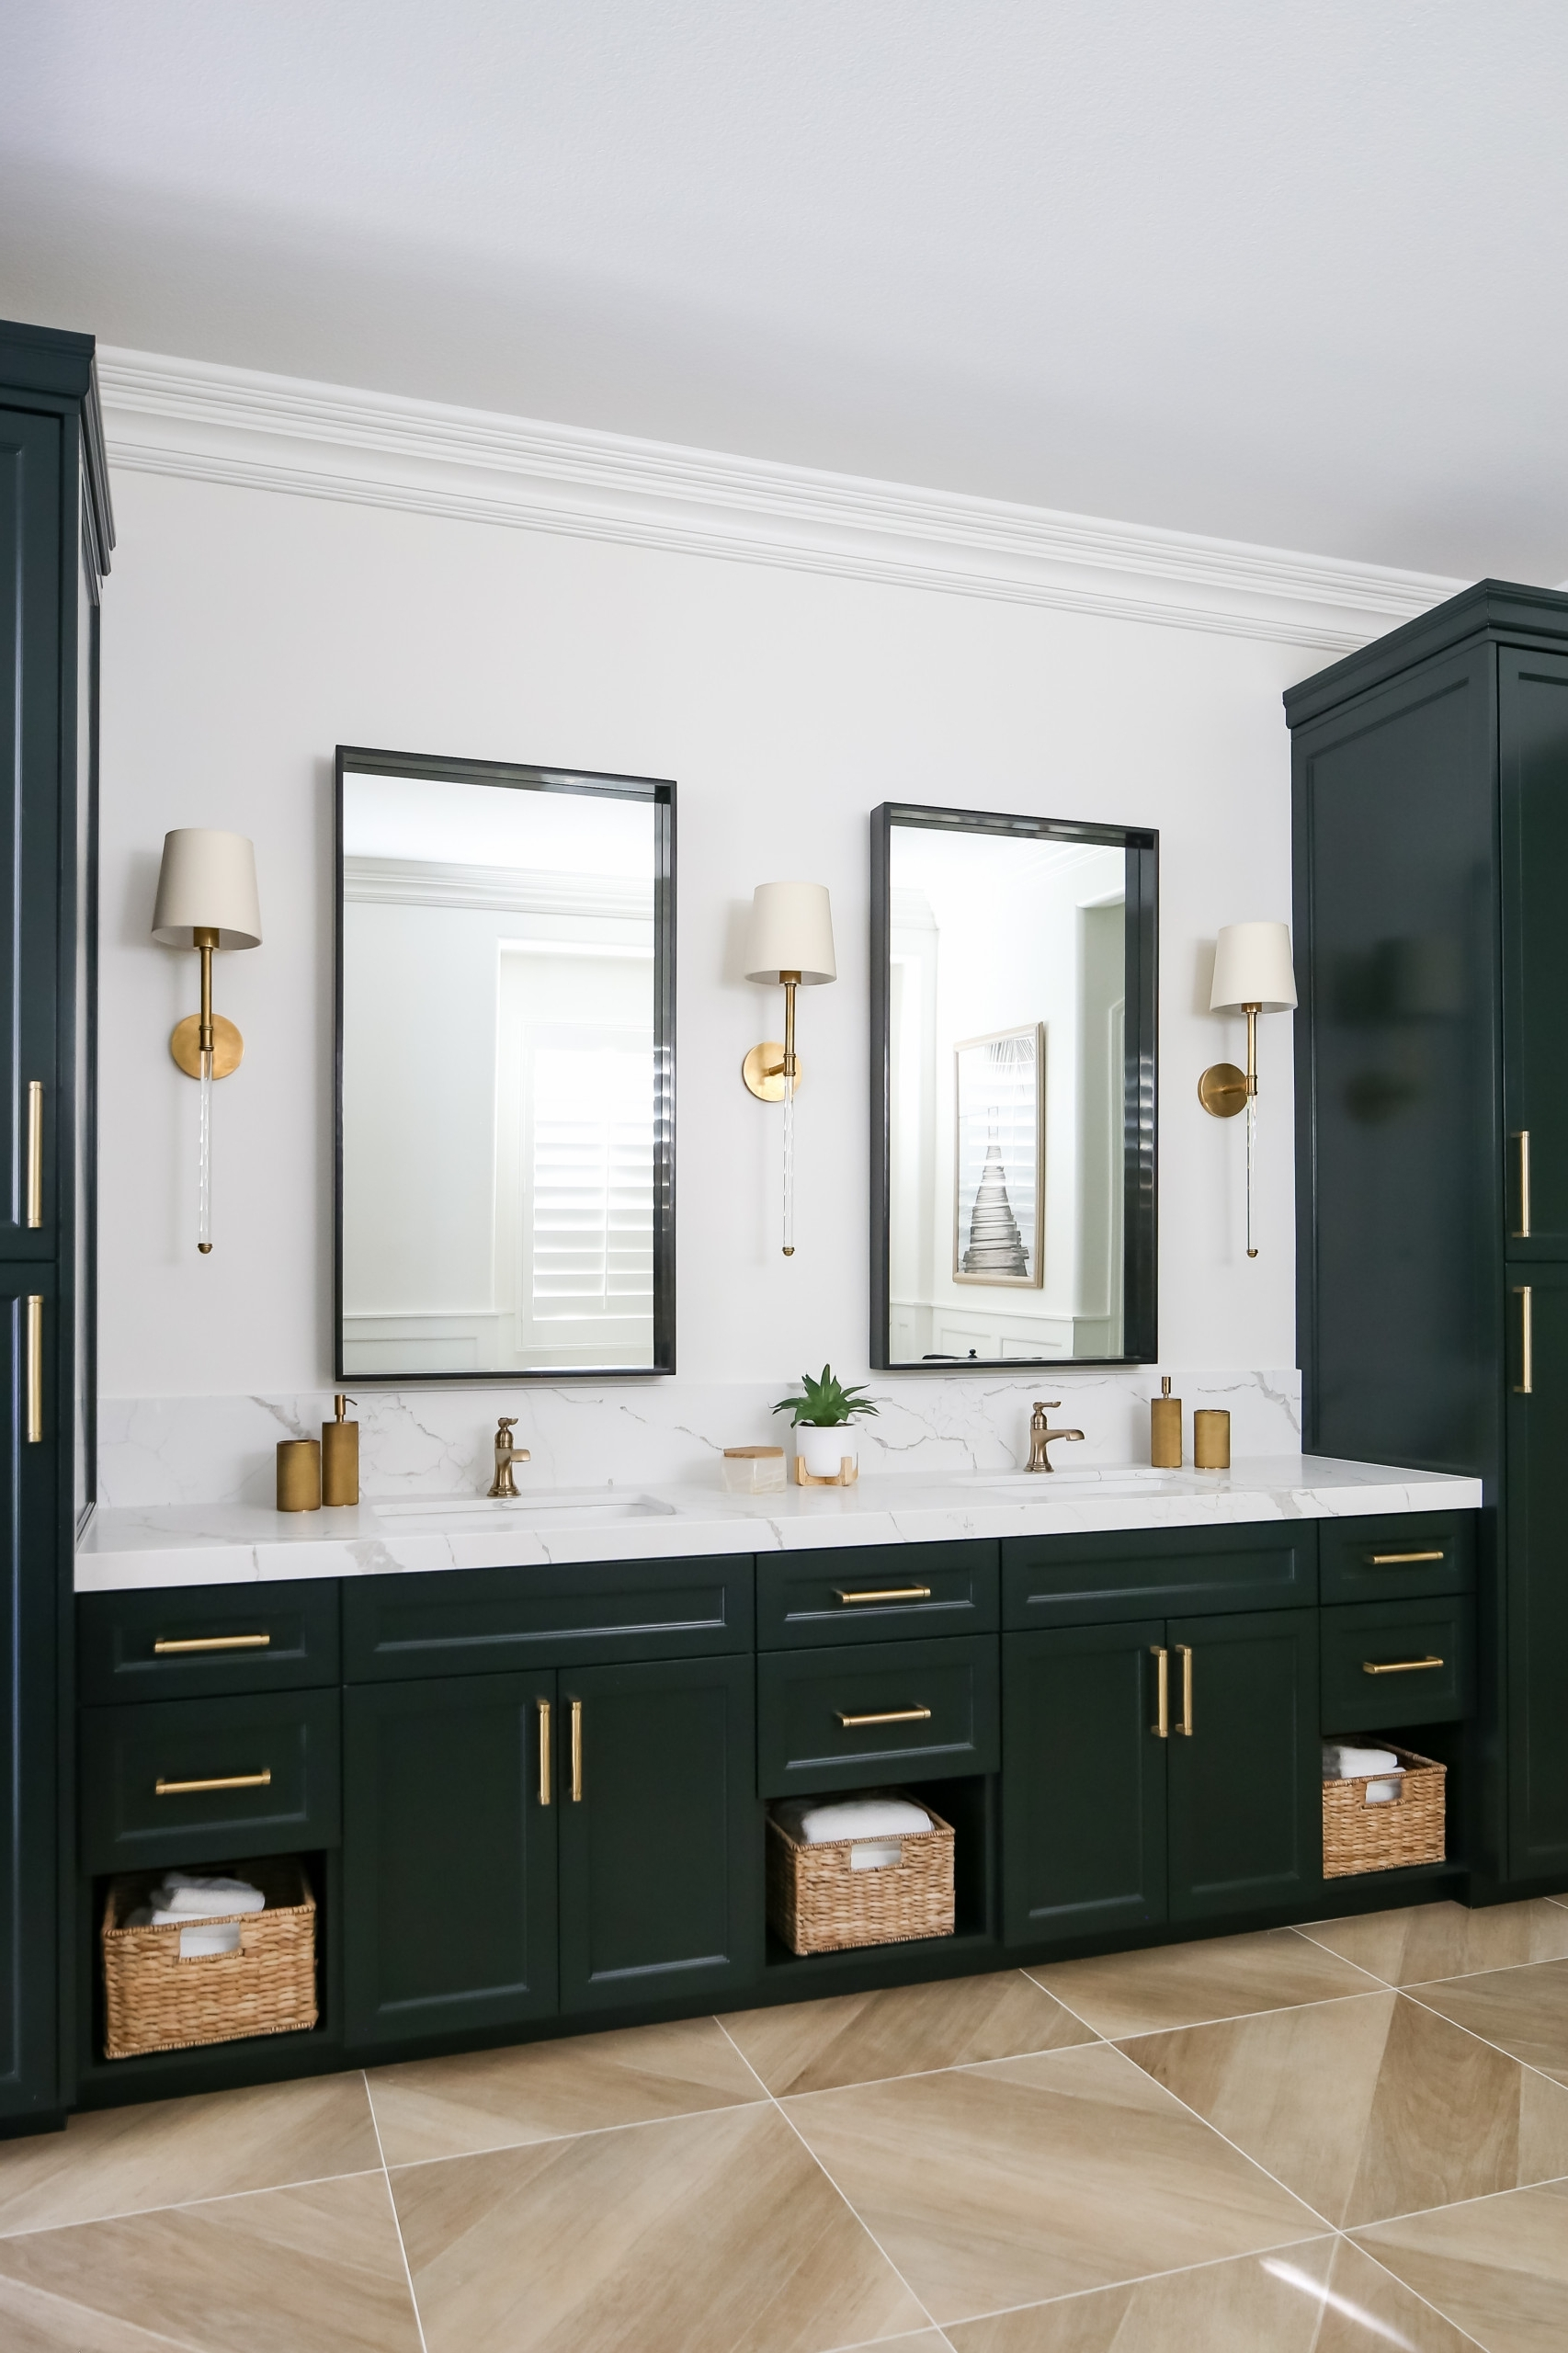 75 Beautiful Bathroom With Green Cabinets And Marble 10+ Bathroom Design Studio Ipswich Inspirations